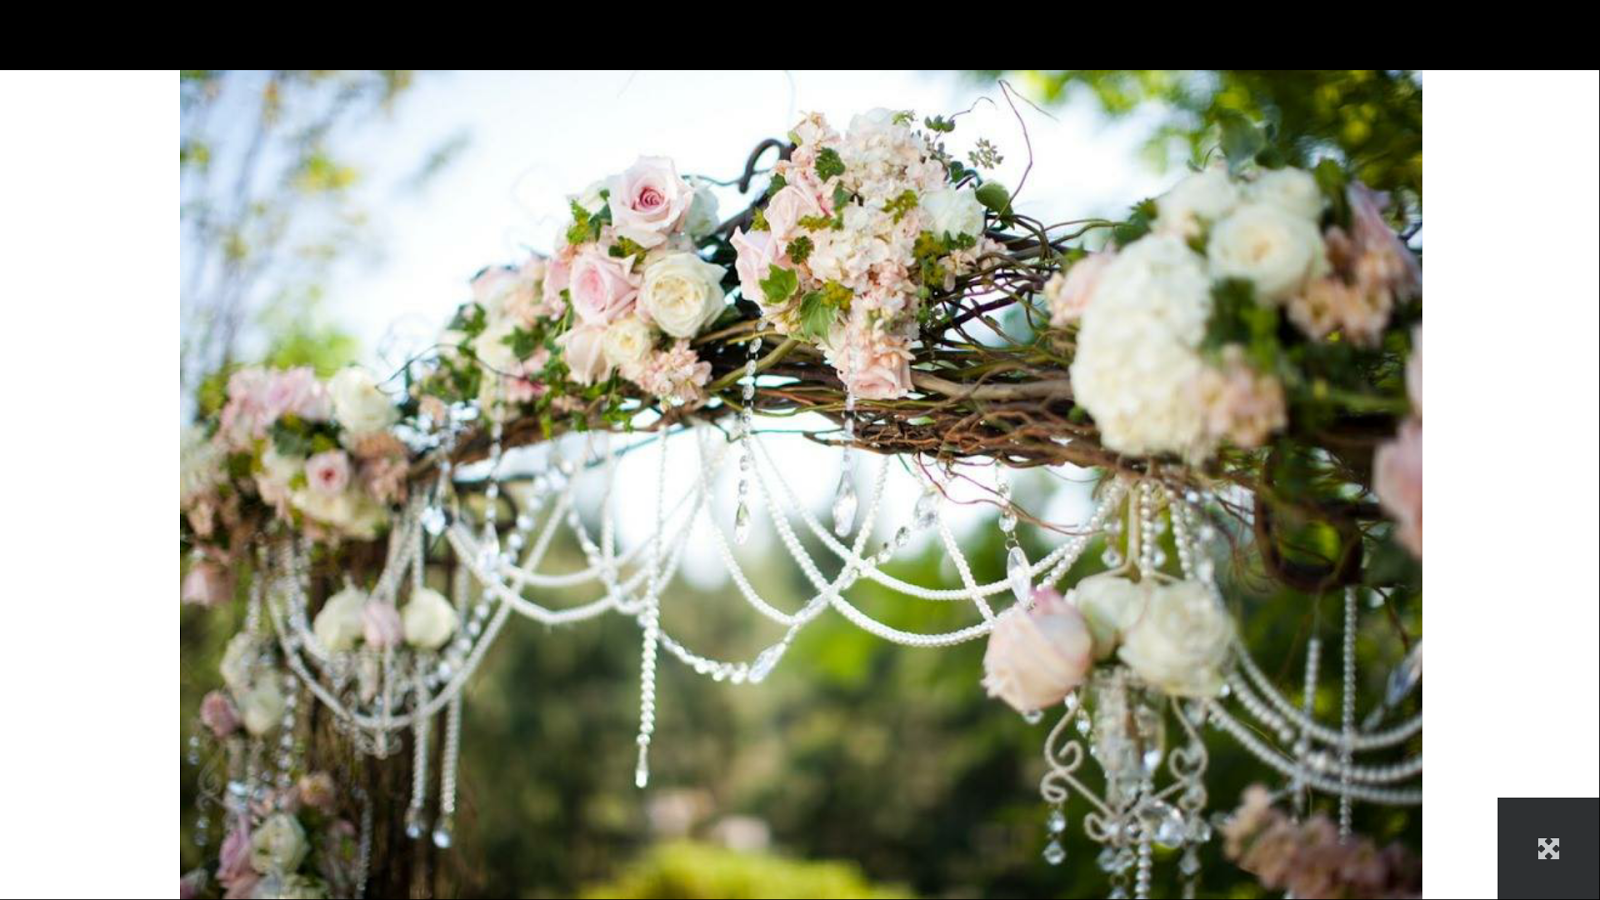 Wedding decorations android apps on google play wedding decorations screenshot junglespirit Images